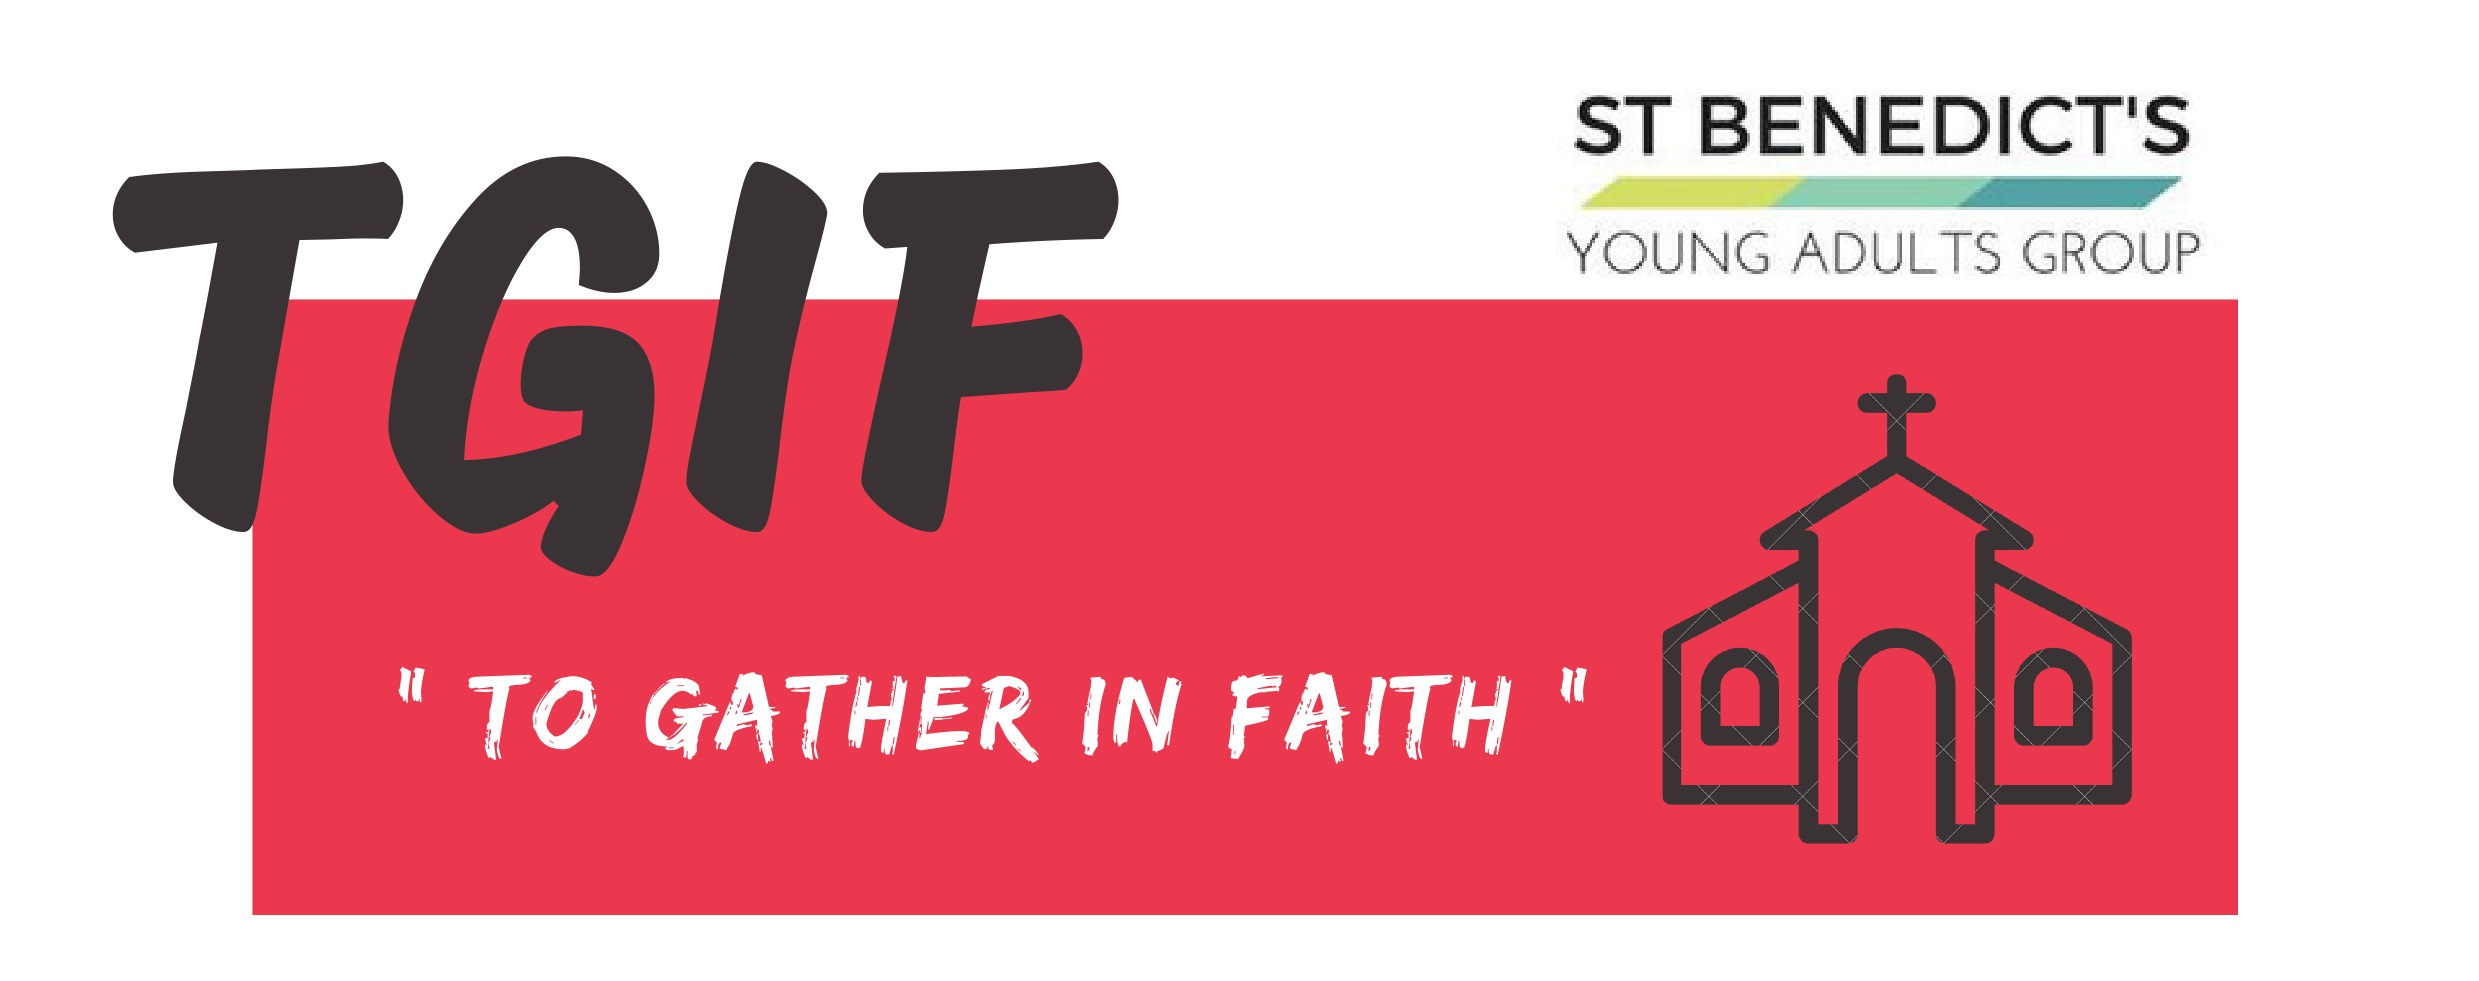 TGIF - To Gather in Faith (6 Session Video Series for Young Adults)